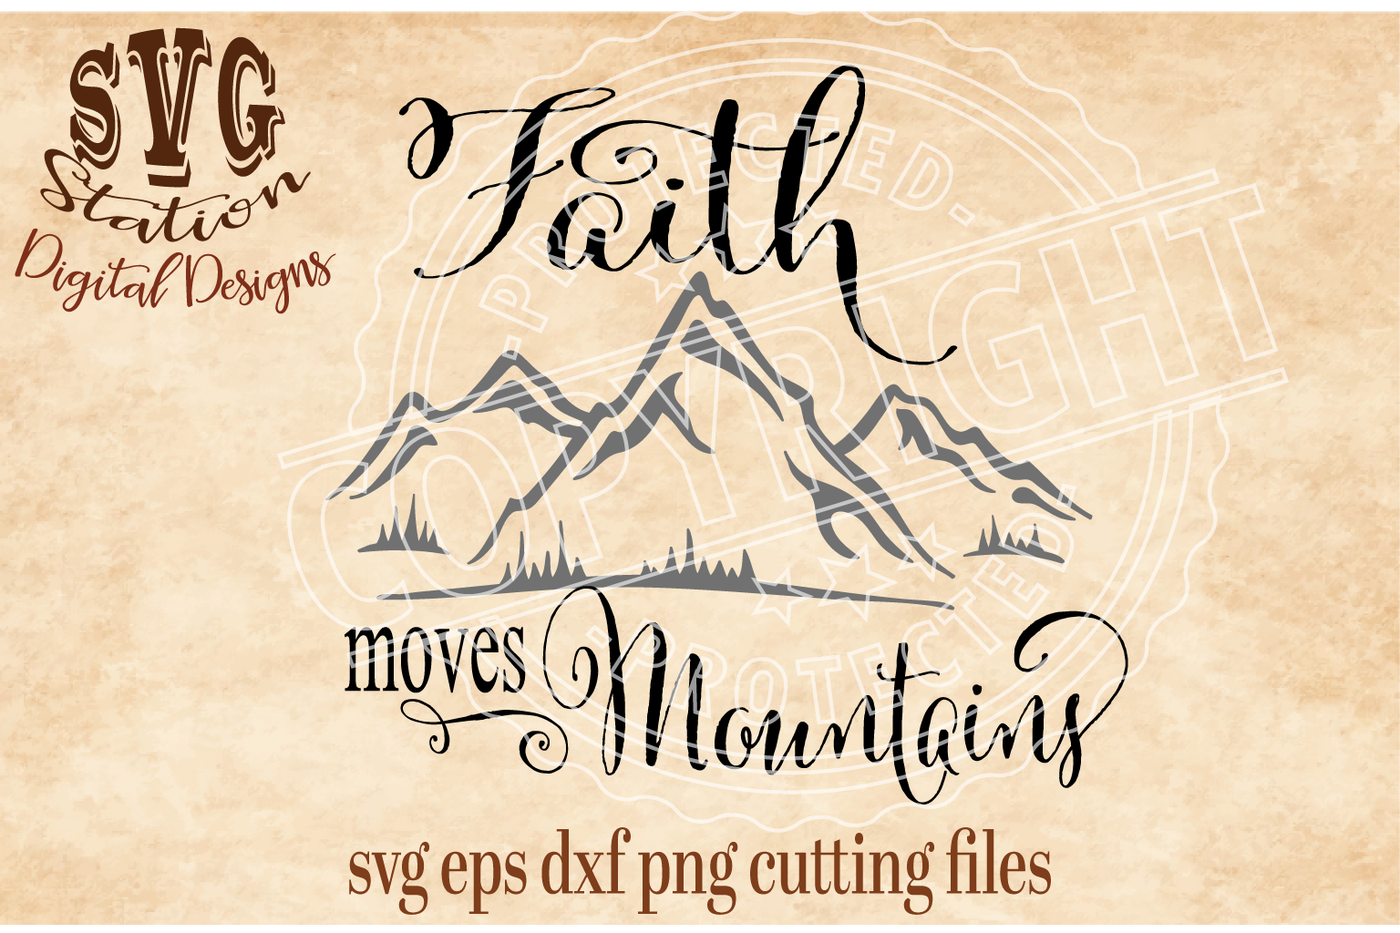 Faith Moves Mountains Svg Dxf Png Eps Cutting File For Silhouette Cricut By Svg Station Thehungryjpeg Com